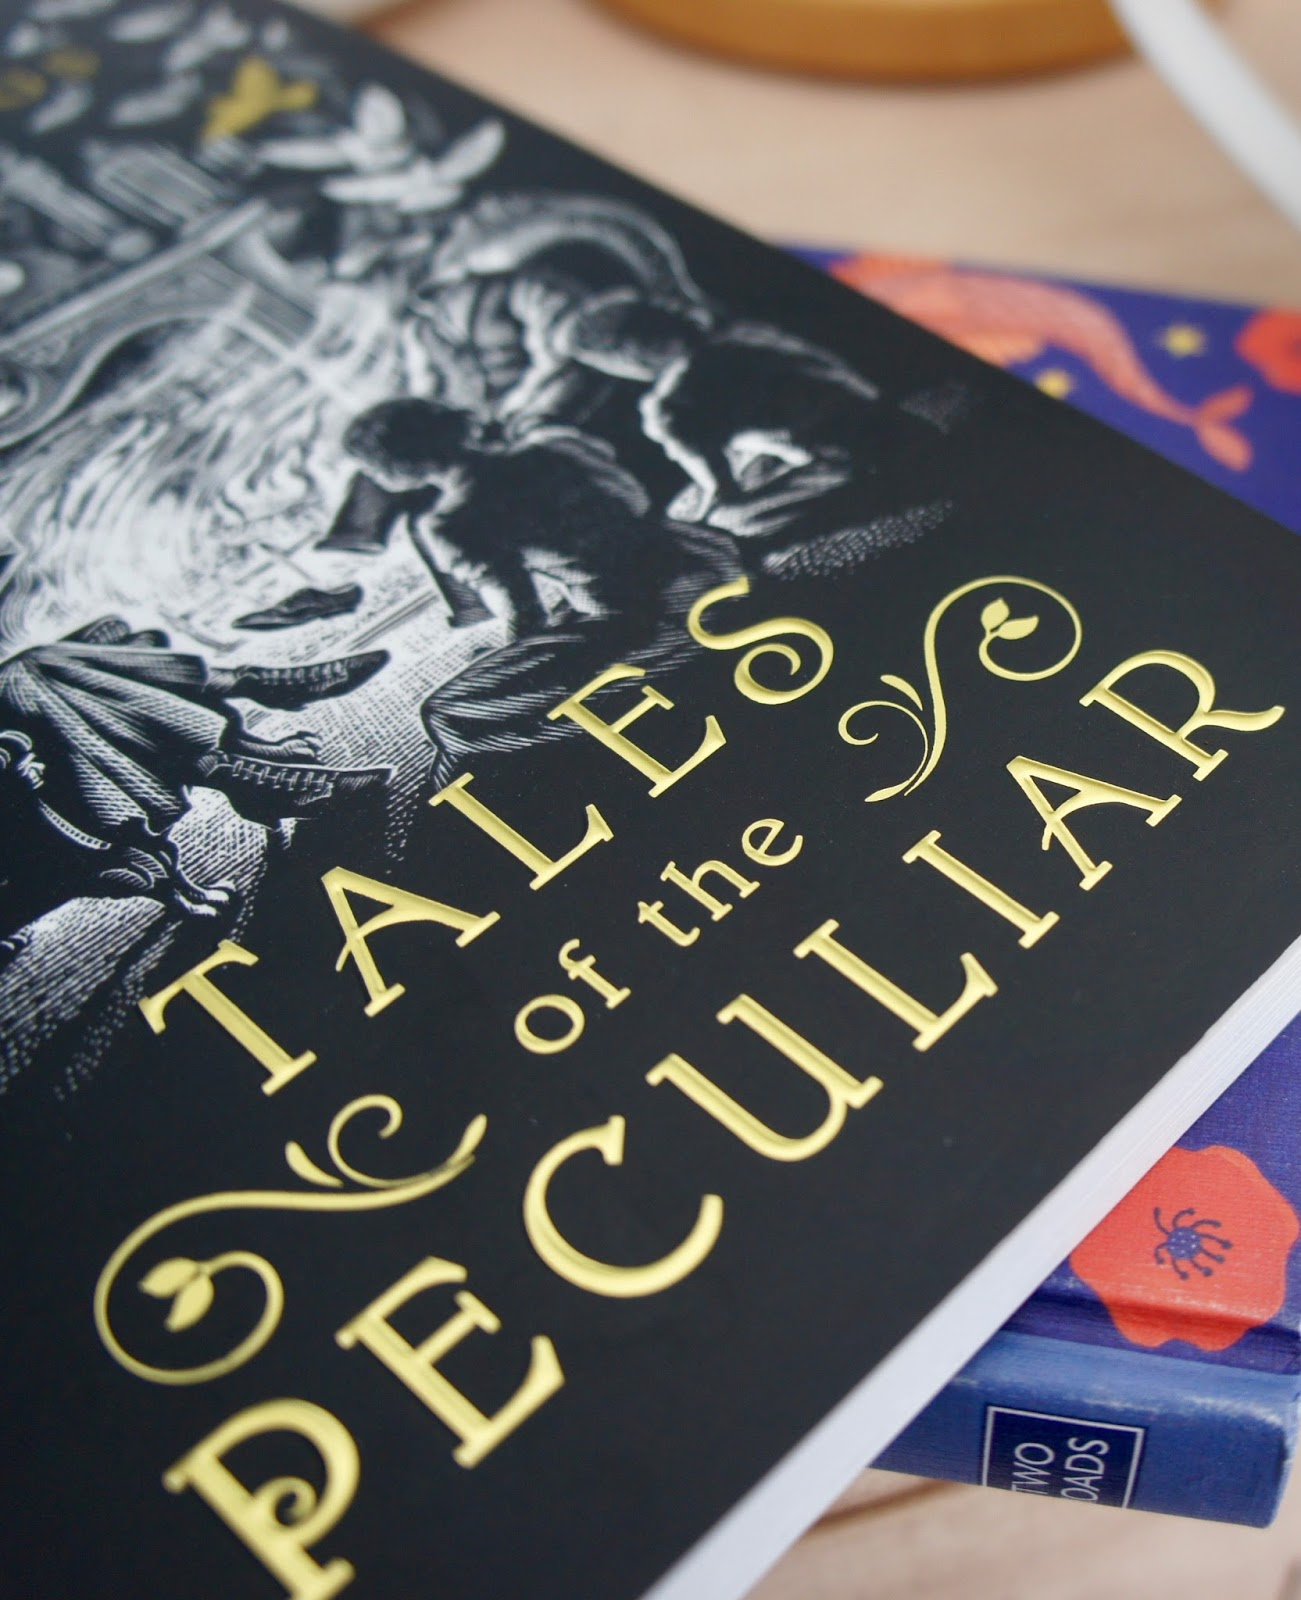 book club tales of the peculiar